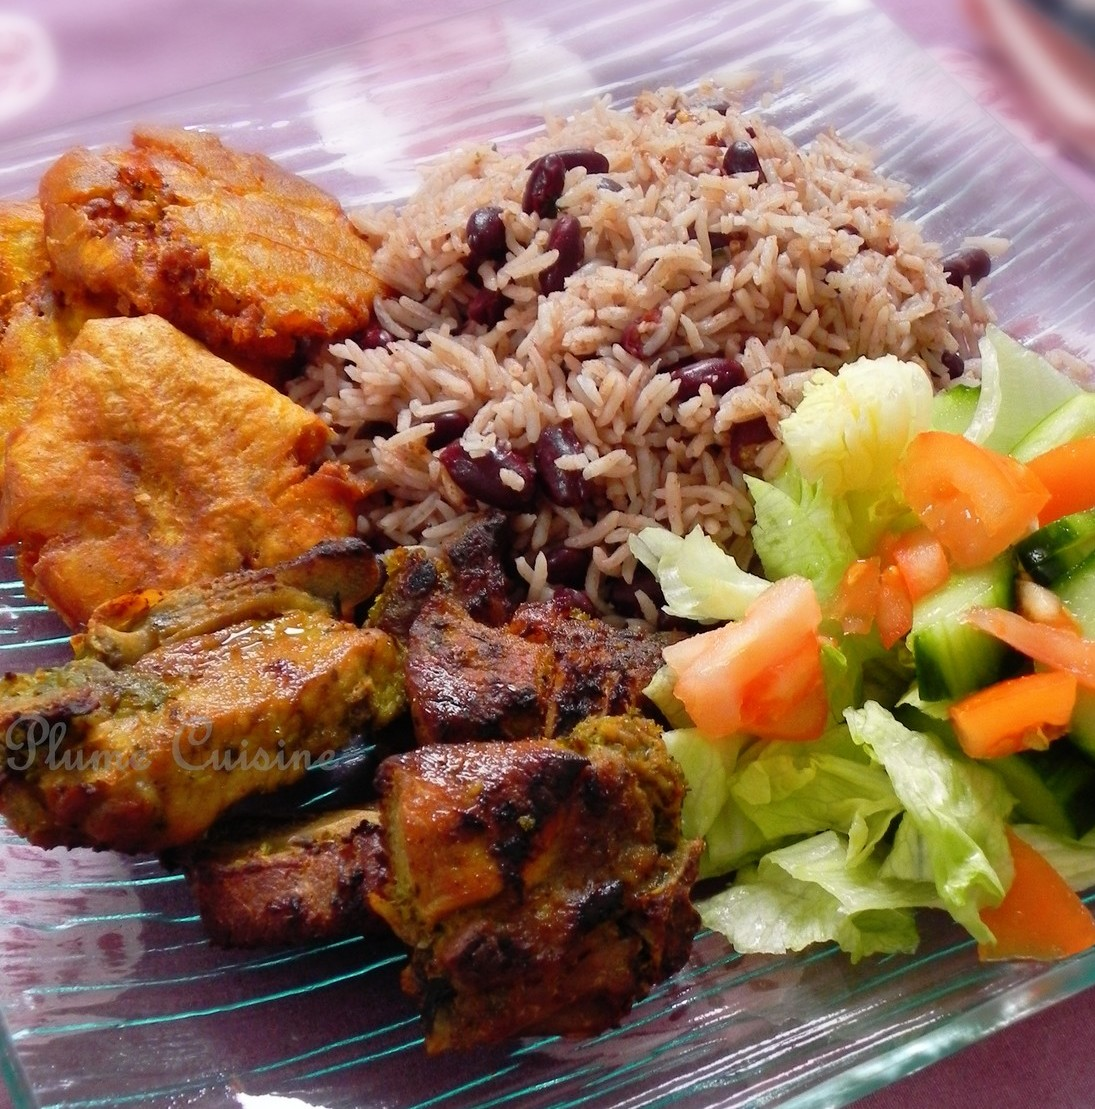 Image gallery nourriture haitienne for Cuisine haitienne